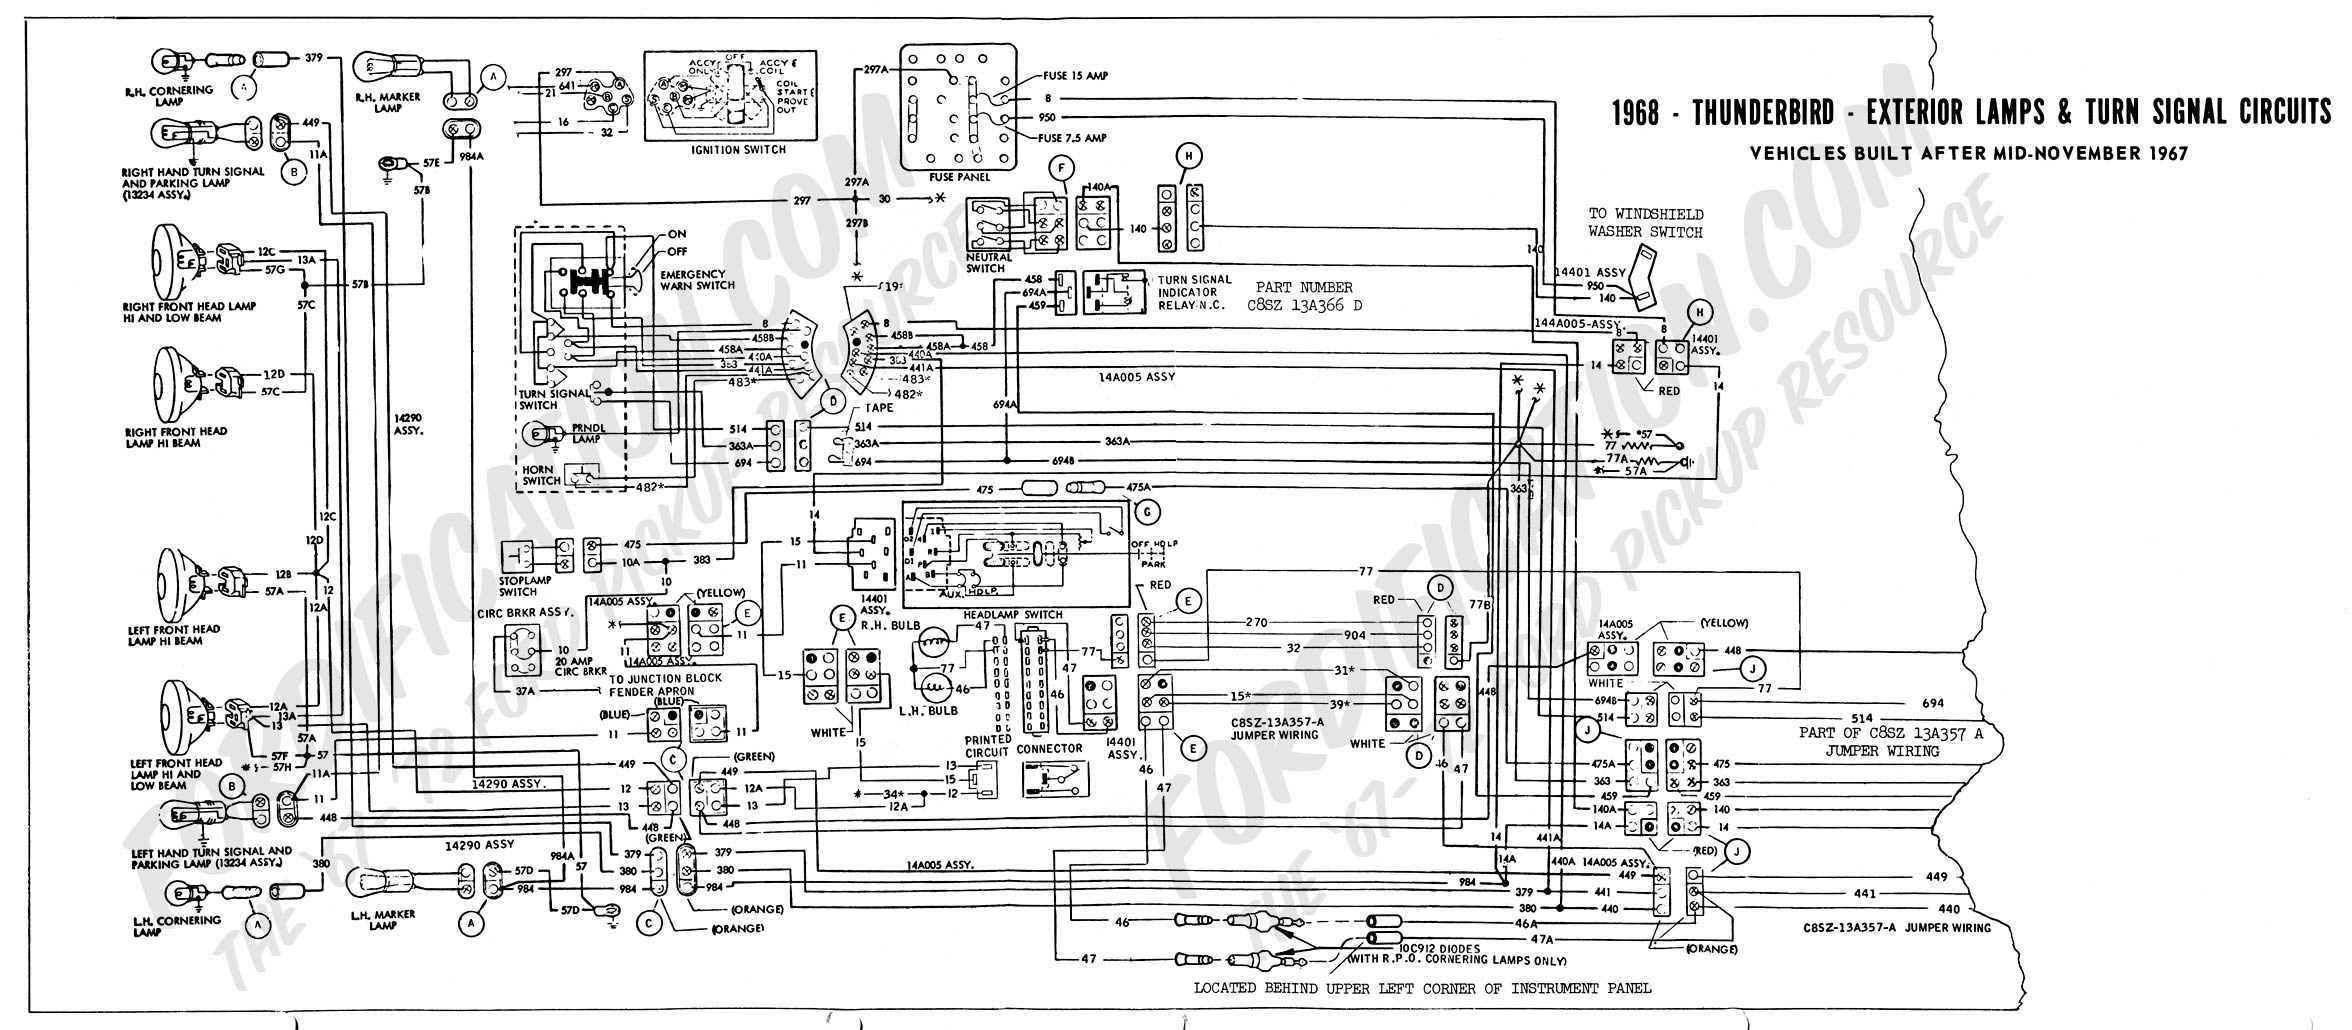 1968 Thunderbird Wiring Diagram Wire Data Schema Corvette Schematic Turn Signal Diy Enthusiasts Rh Okdrywall Co 1970 1966